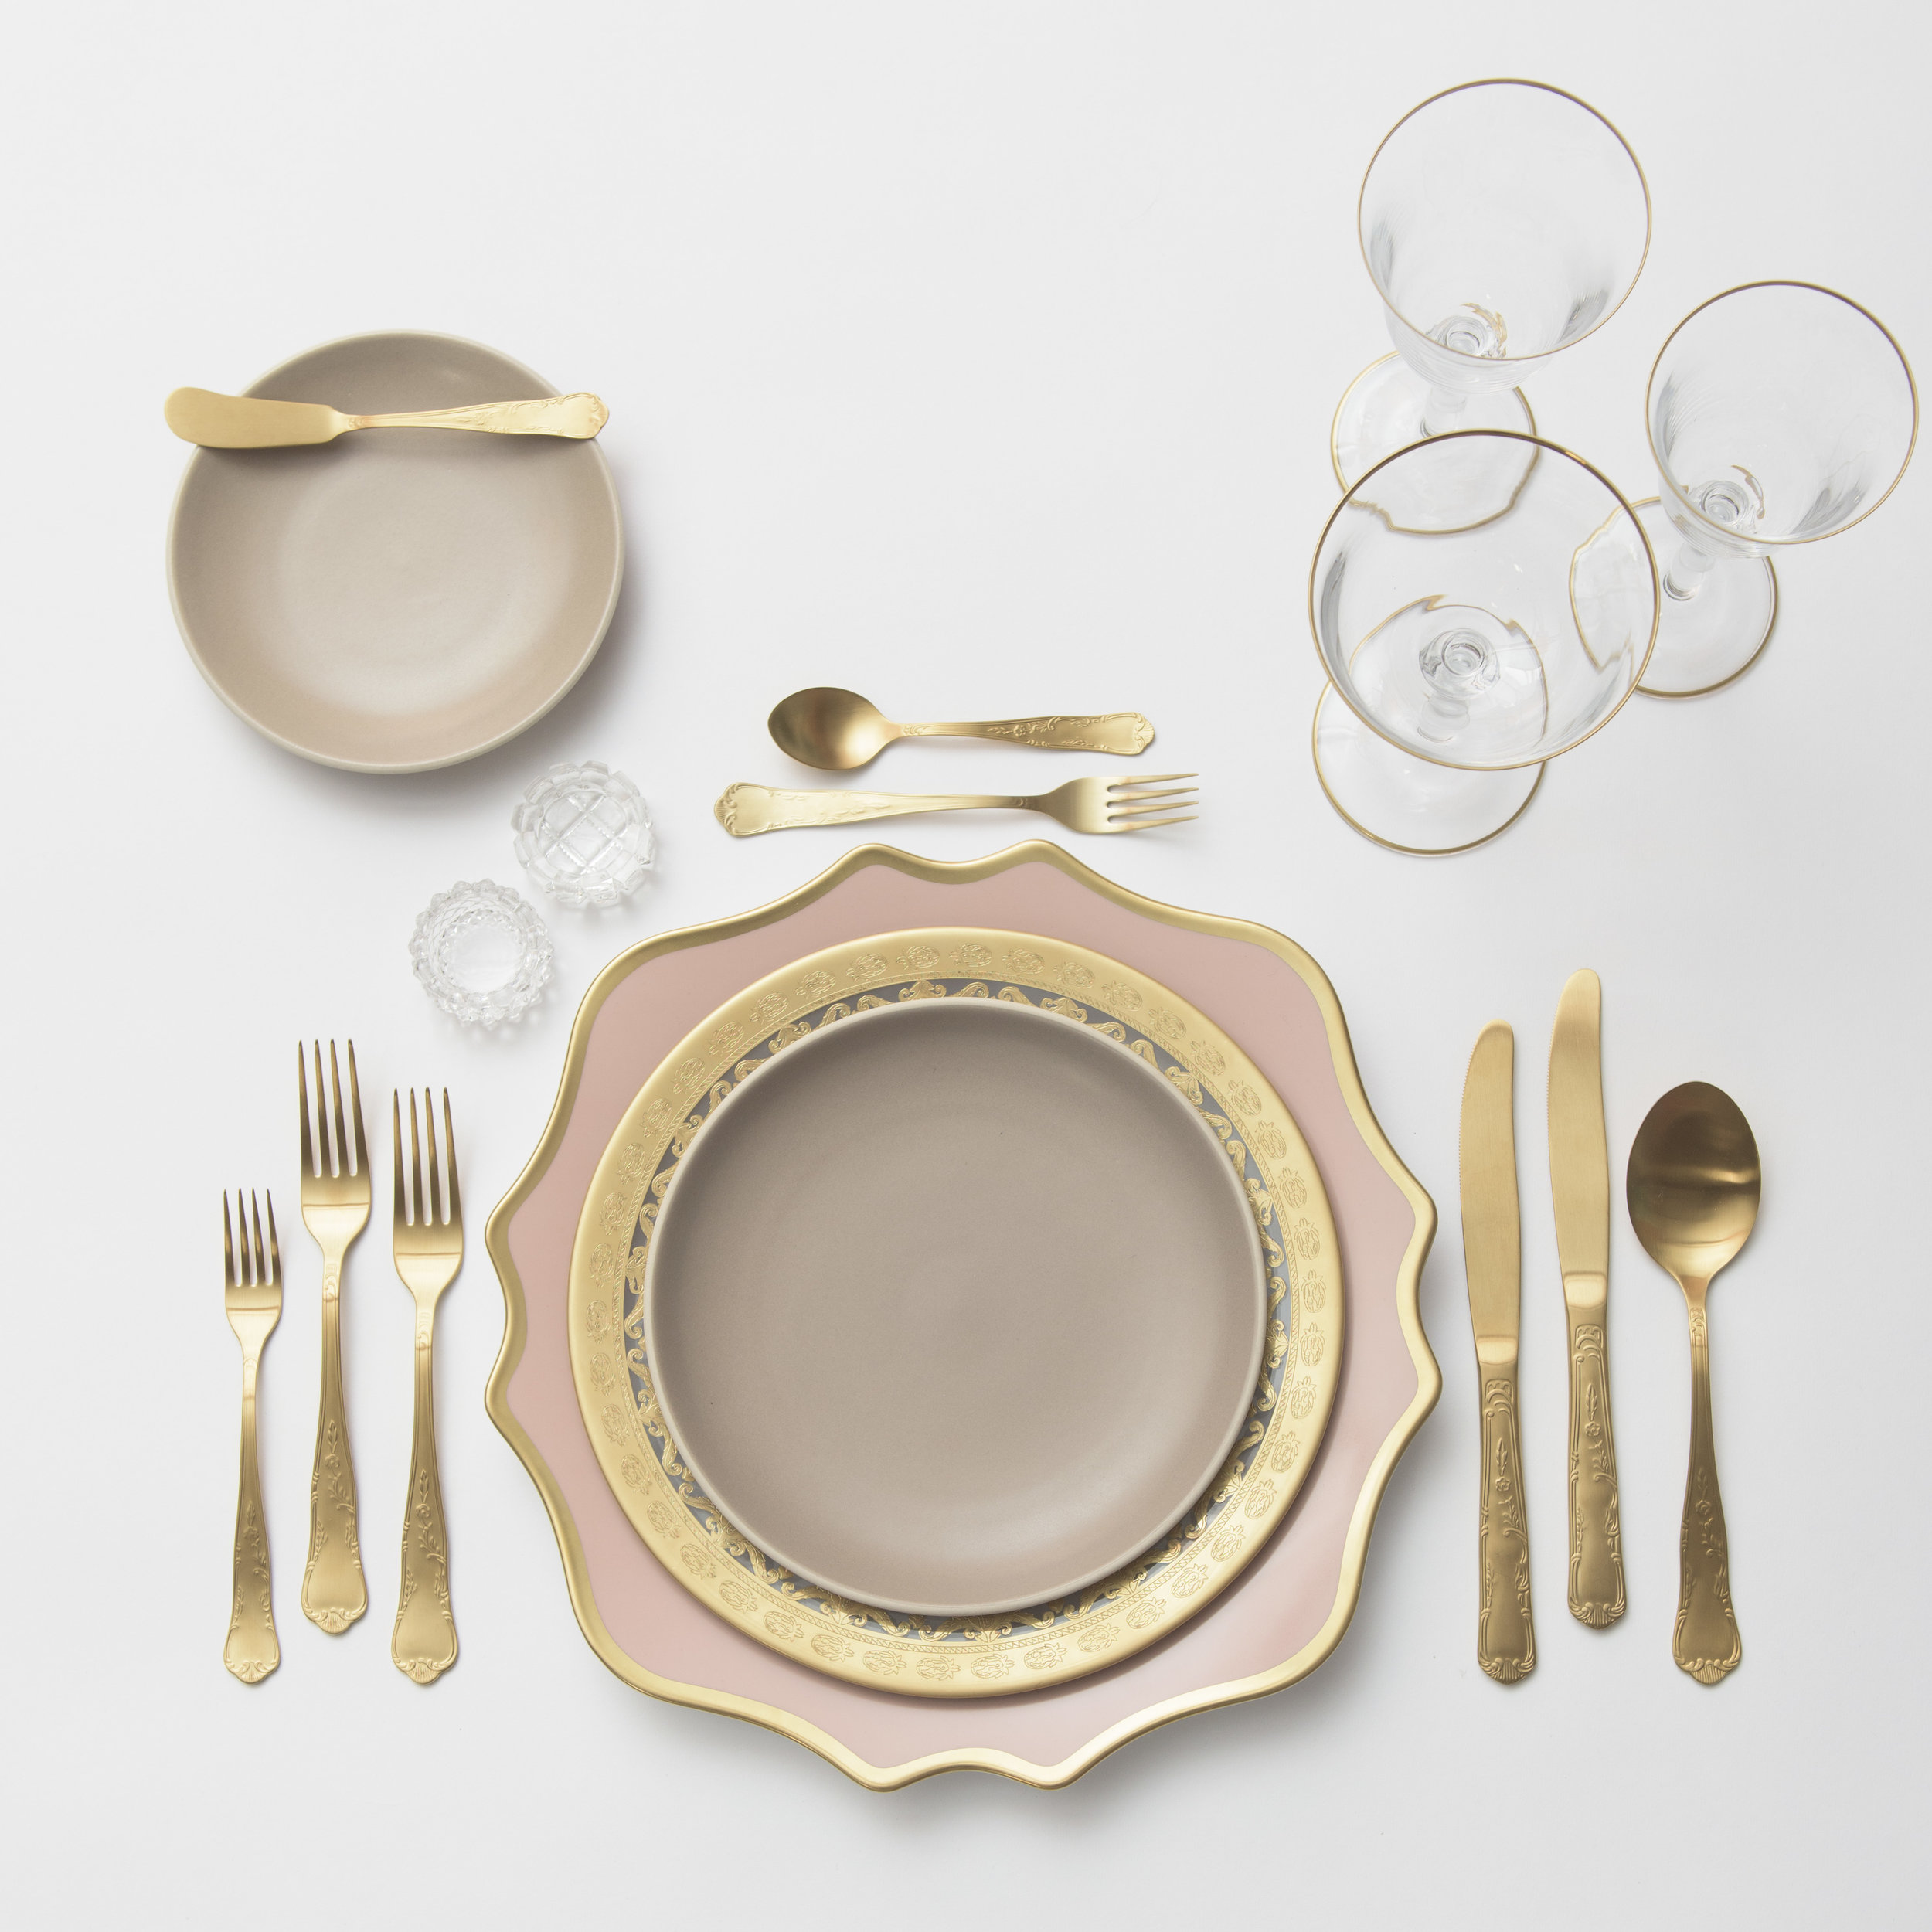 RENT: Anna Weatherley Chargers in Desert Rose/Gold + Versailles Glass Dinnerware in 24k Gold + Heath Ceramics in French Grey + Chateau Flatware in Matte Gold + Chloe 24k Gold Rimmed Stemware + Antique Crystal Salt Cellars  SHOP: Chloe 24k Gold Rimmed Stemware